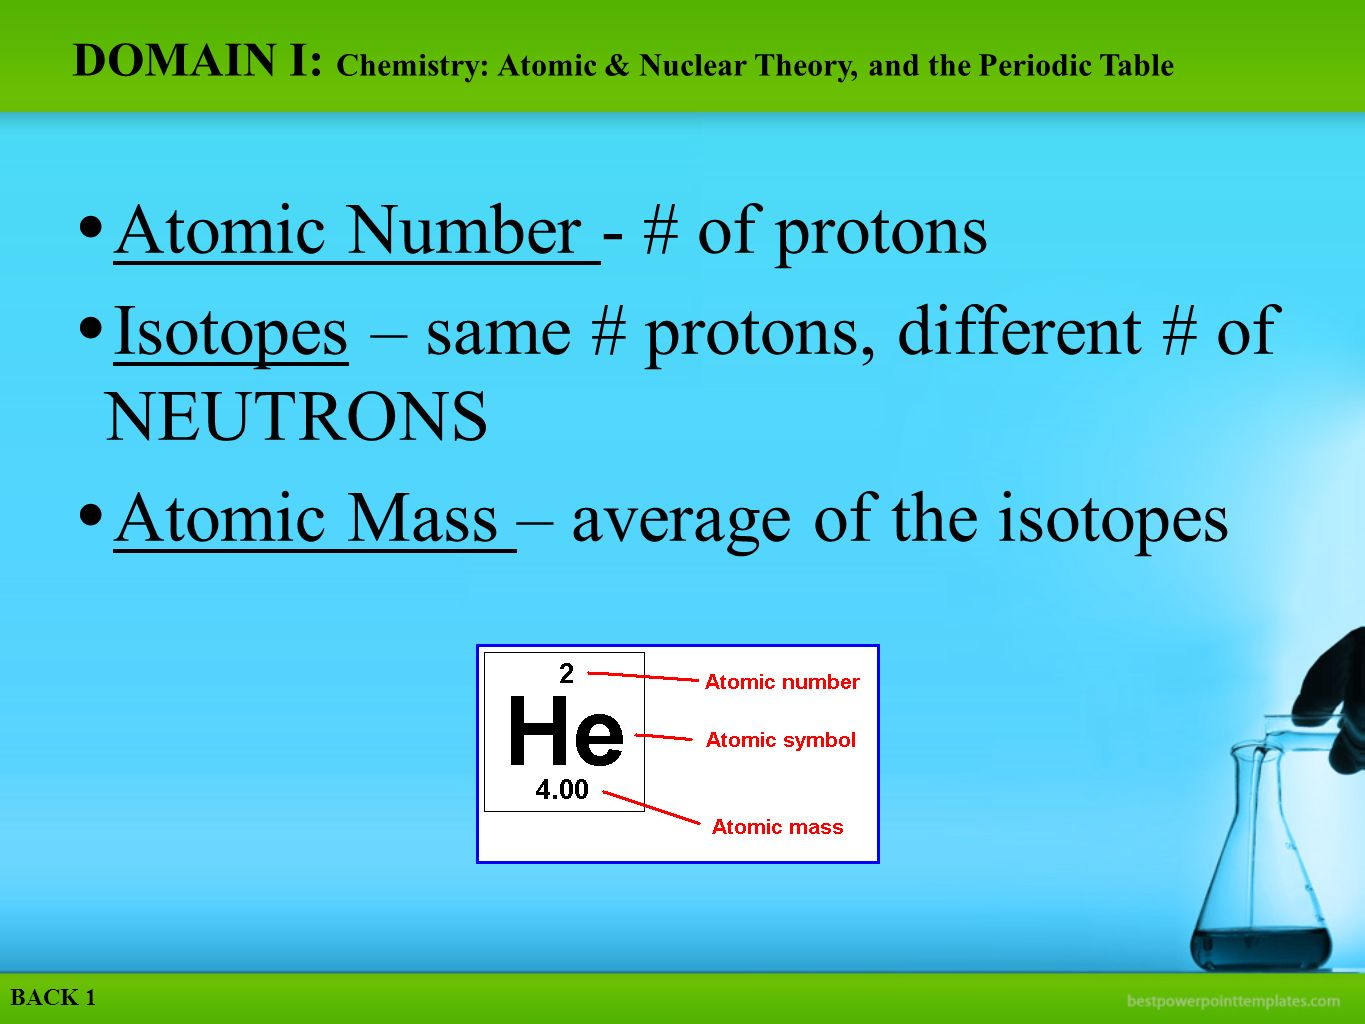 Physical science eoct etowah high school ppt download domain i chemistry atomic nuclear theory and the periodic table gamestrikefo Image collections